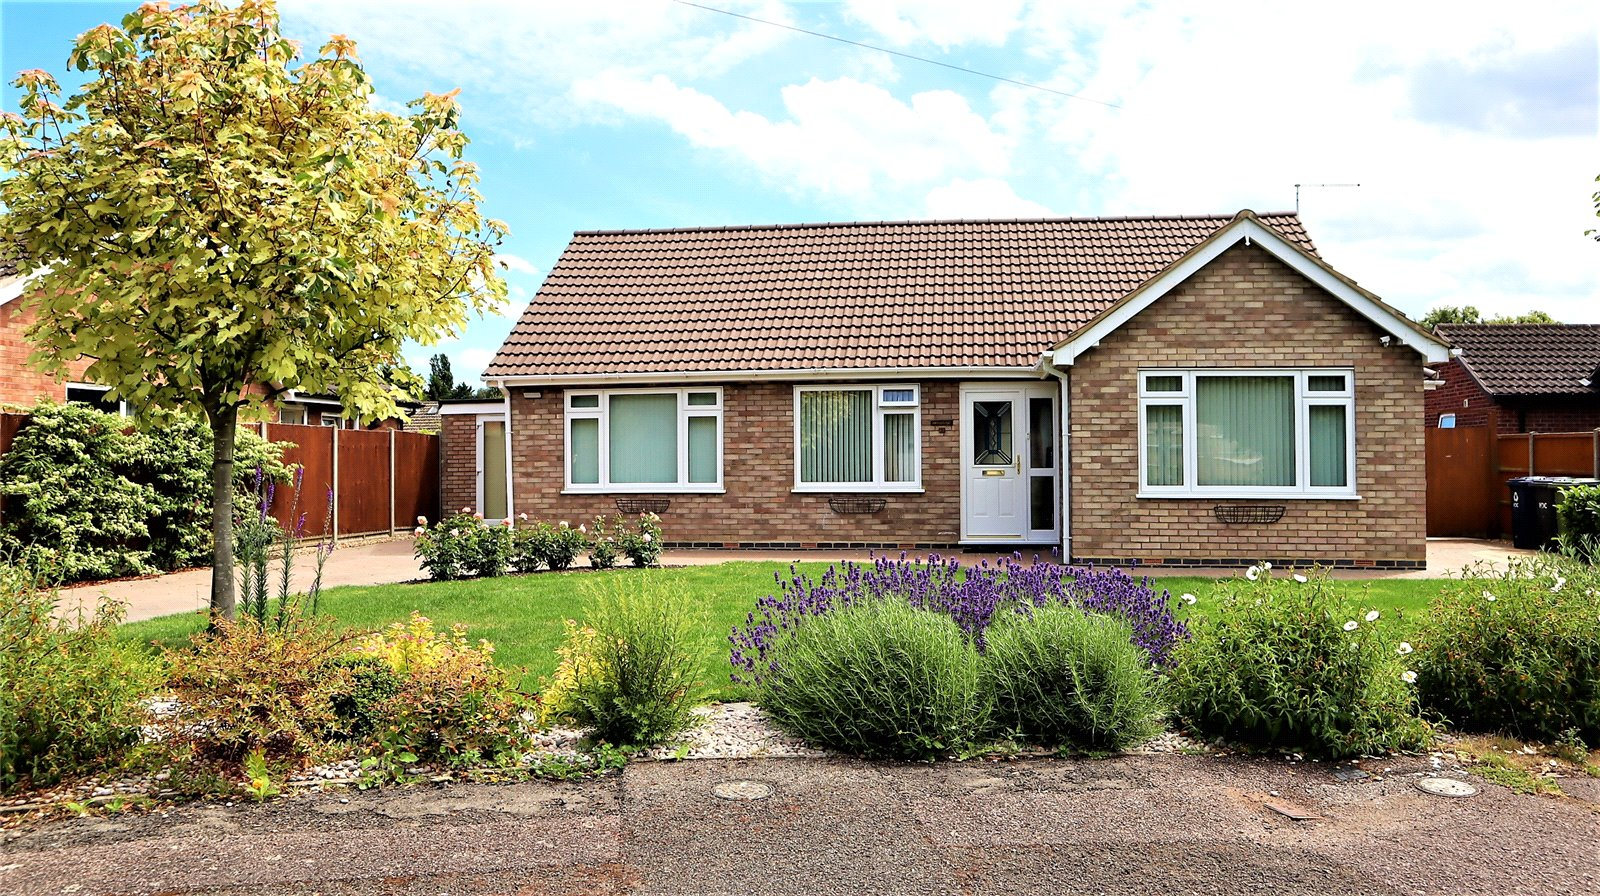 3 bed bungalow for sale in Eaton Socon, Peppercorn Lane, PE19 8HL - Property Image 1